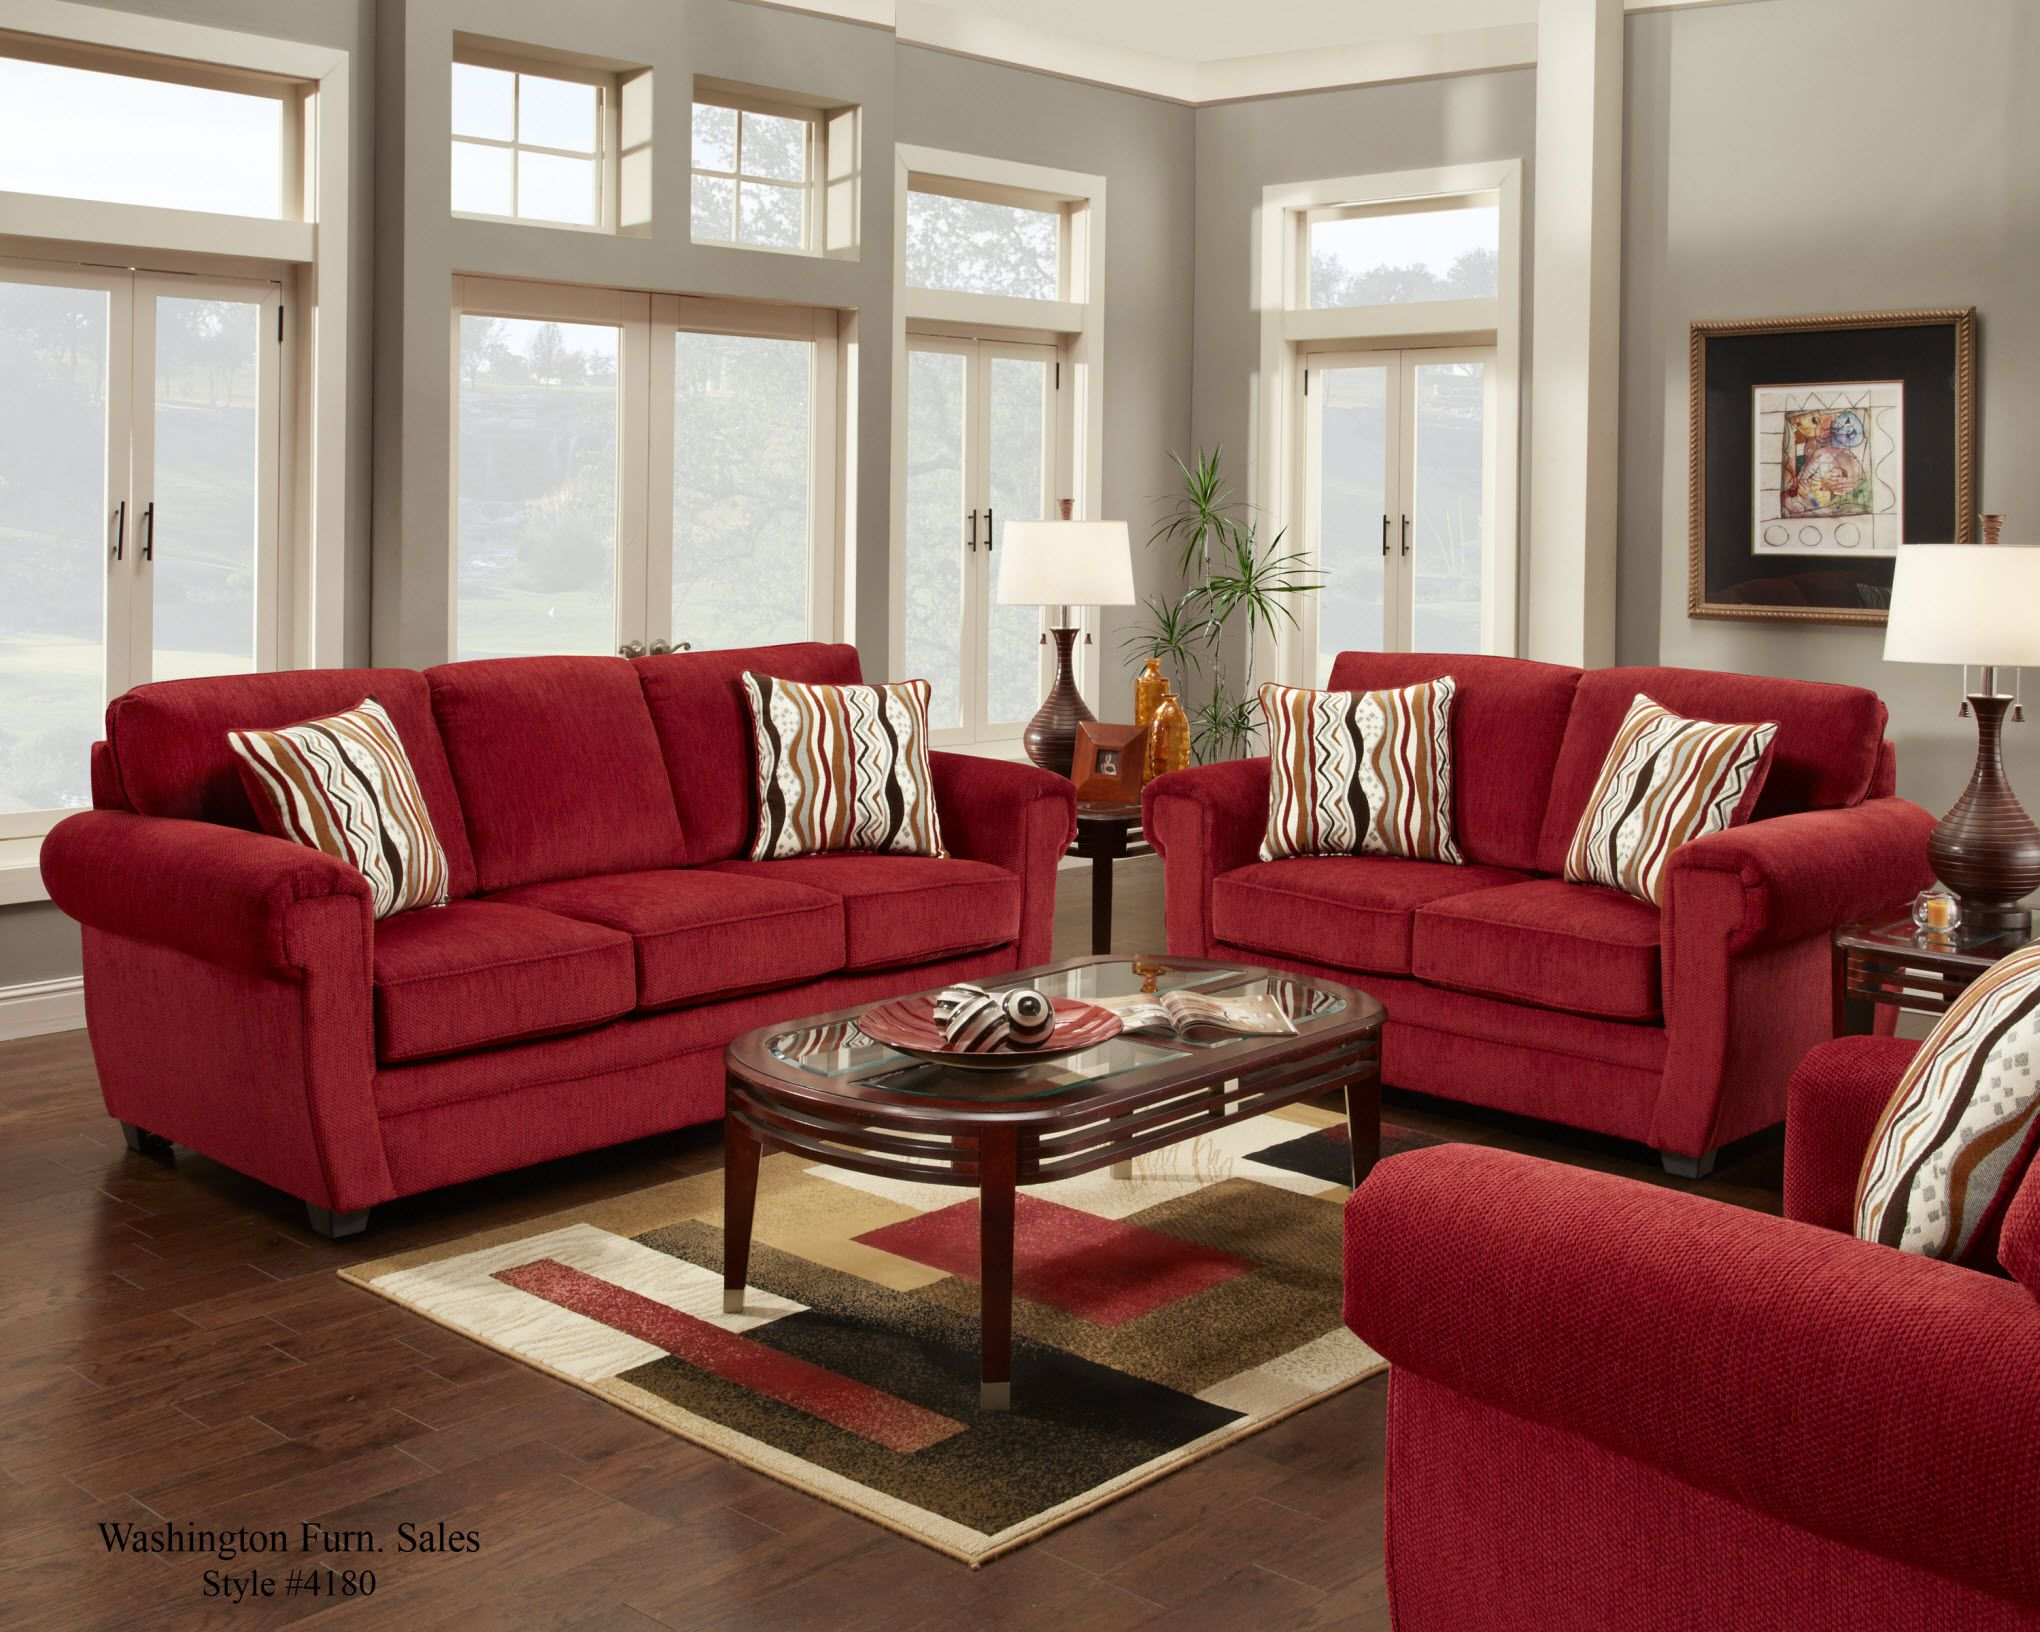 4180 washington samson red sofa and loveseat www for Room decor wall